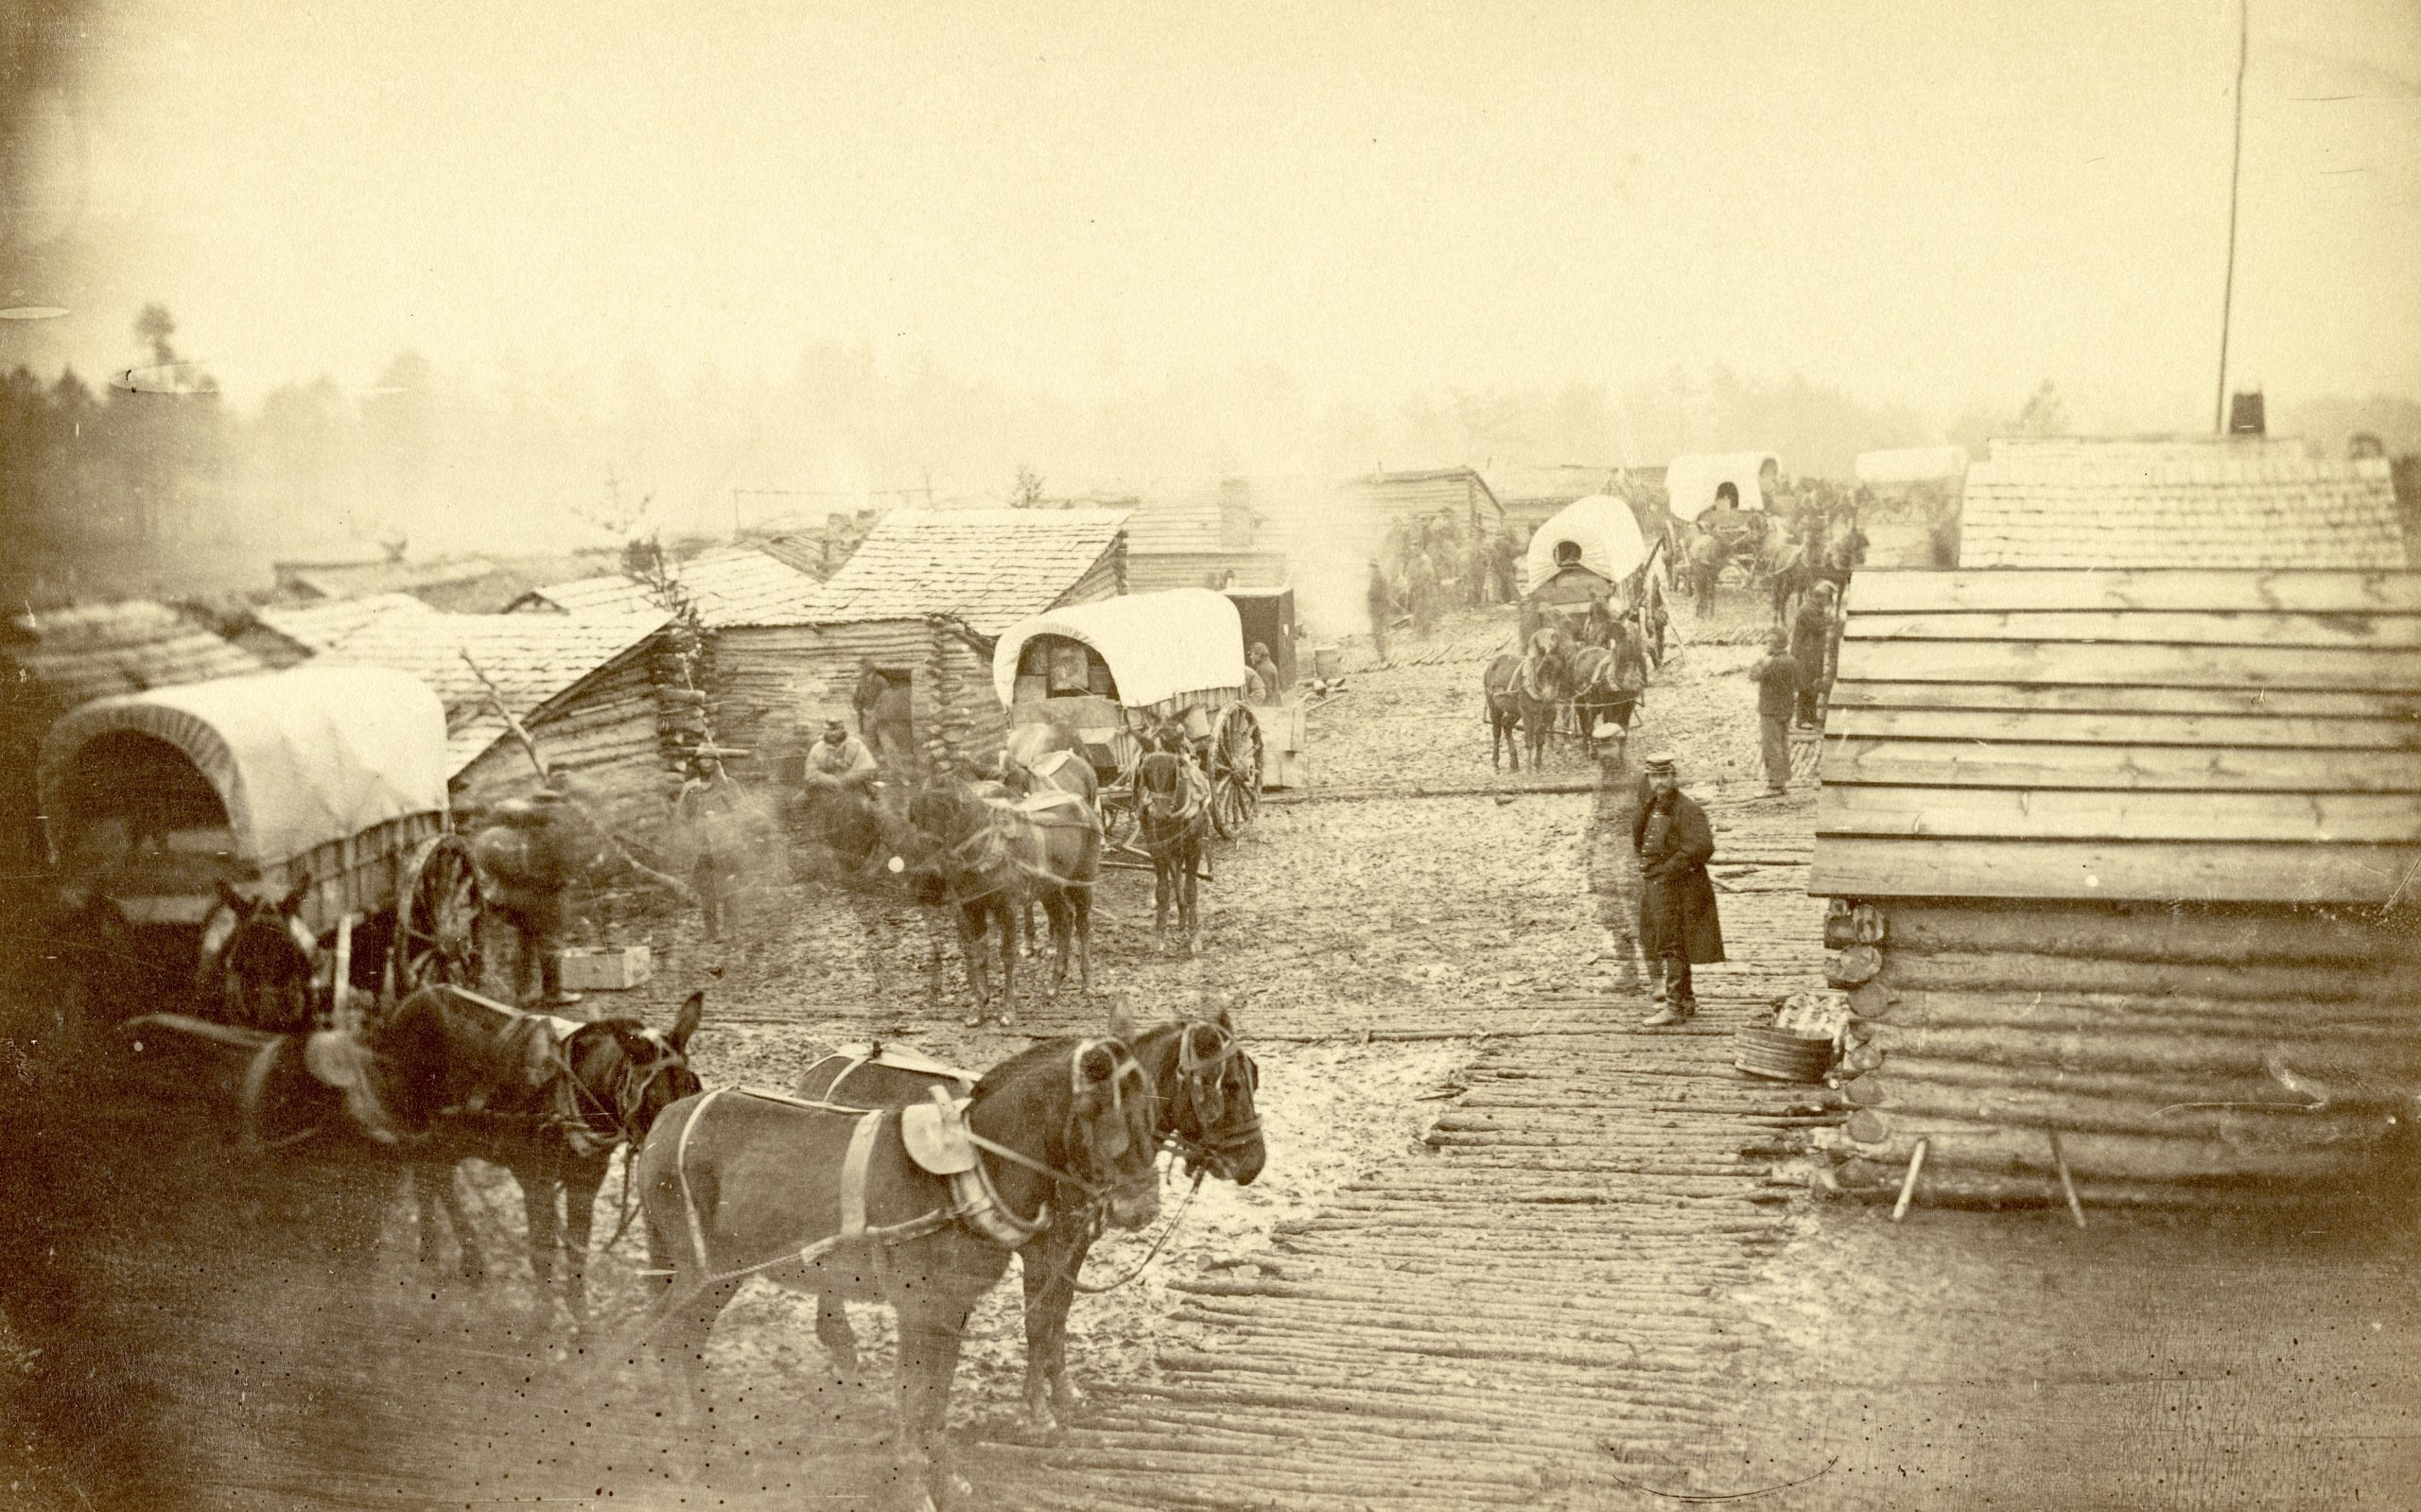 Camp of the Union forces at Centreville, Va. Winter 1861-62